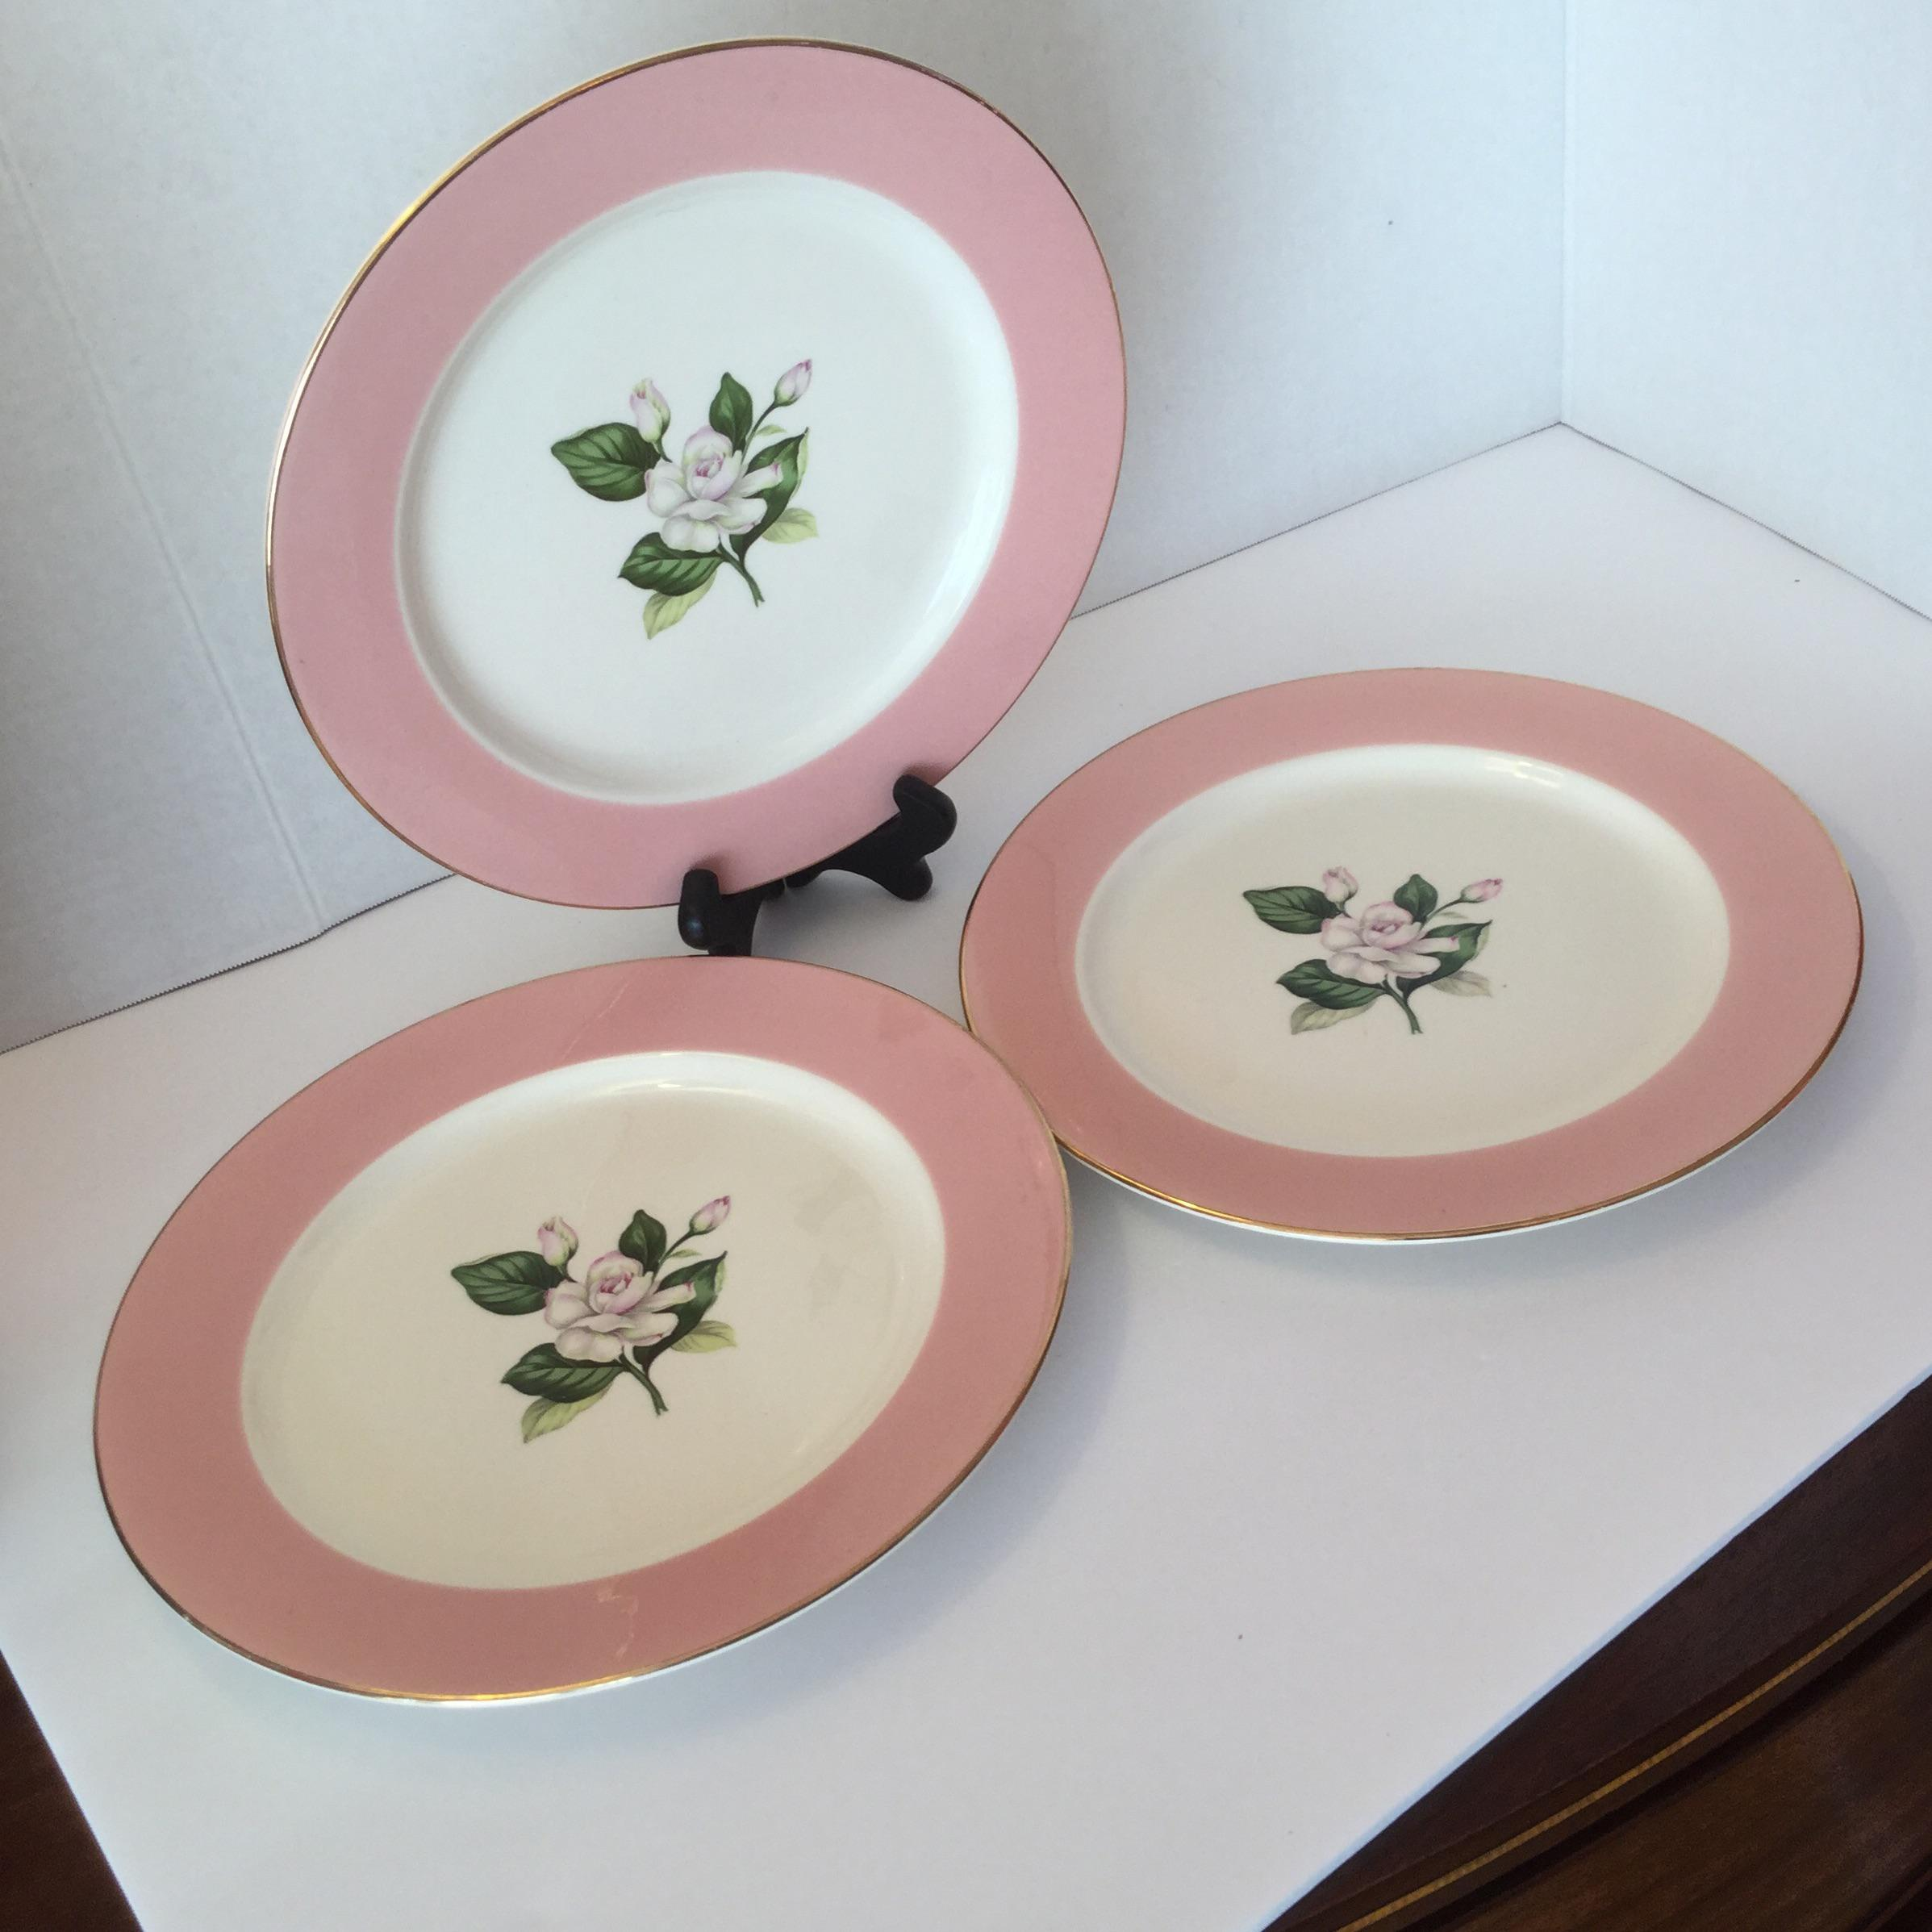 Mid-Century Pink Dinner Plates - Set of 3 - Image 2 of 11 & Mid-Century Pink Dinner Plates - Set of 3 | Chairish